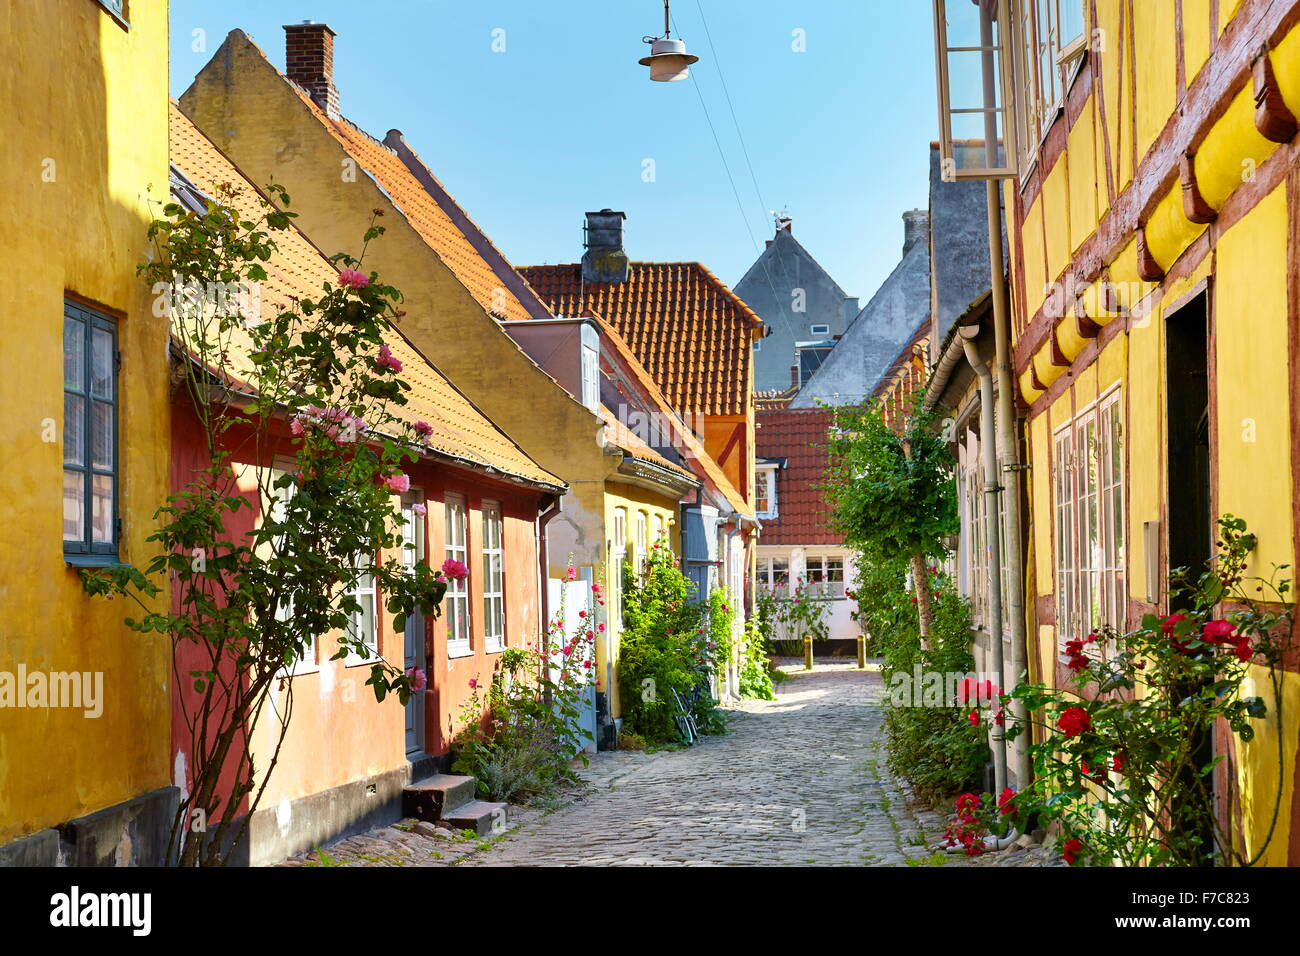 Old town city in Helsingor, Denmark - Stock Image